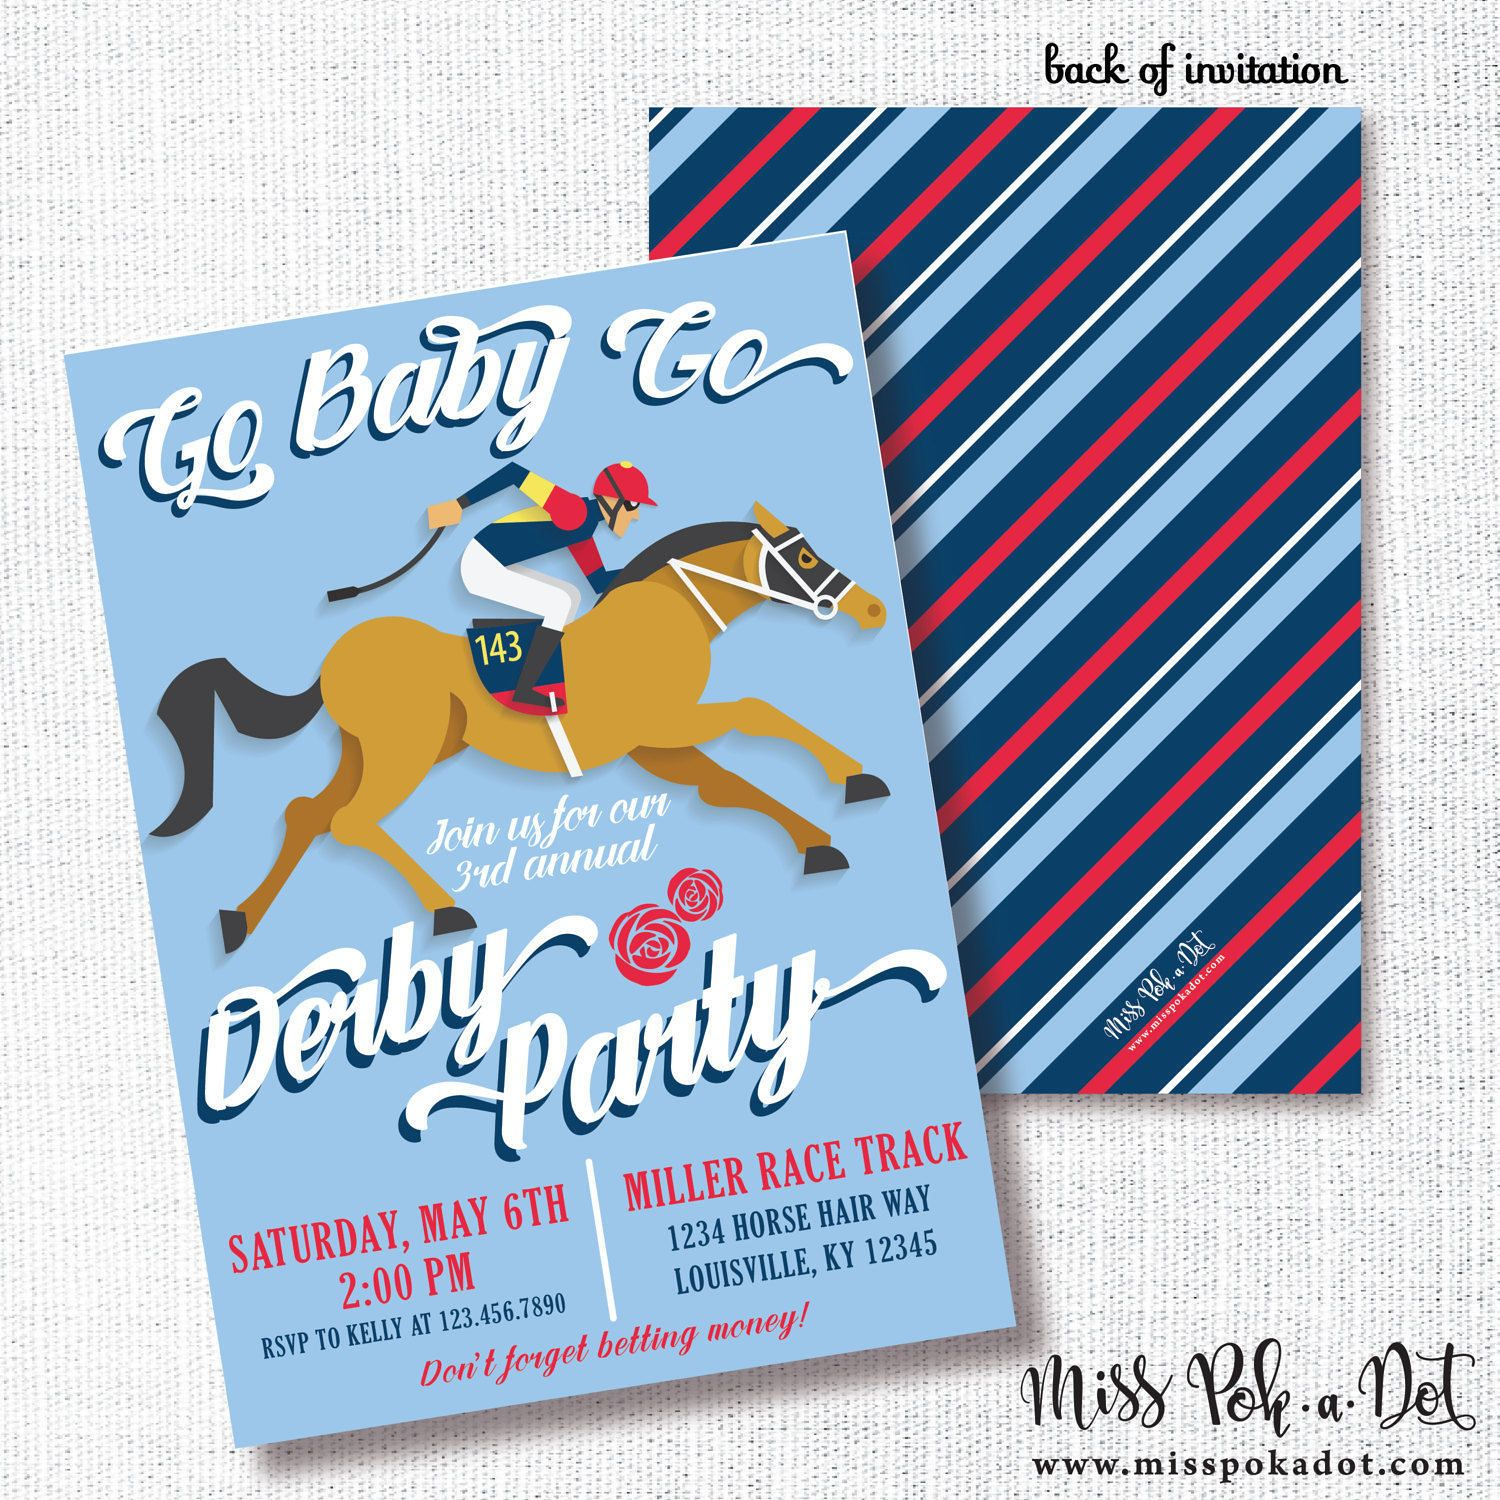 Kentucky derby party invitation printable horse race invite go go baby go kentucky derby 143 party invitation horse racing party run for the roses jockey stopboris Image collections